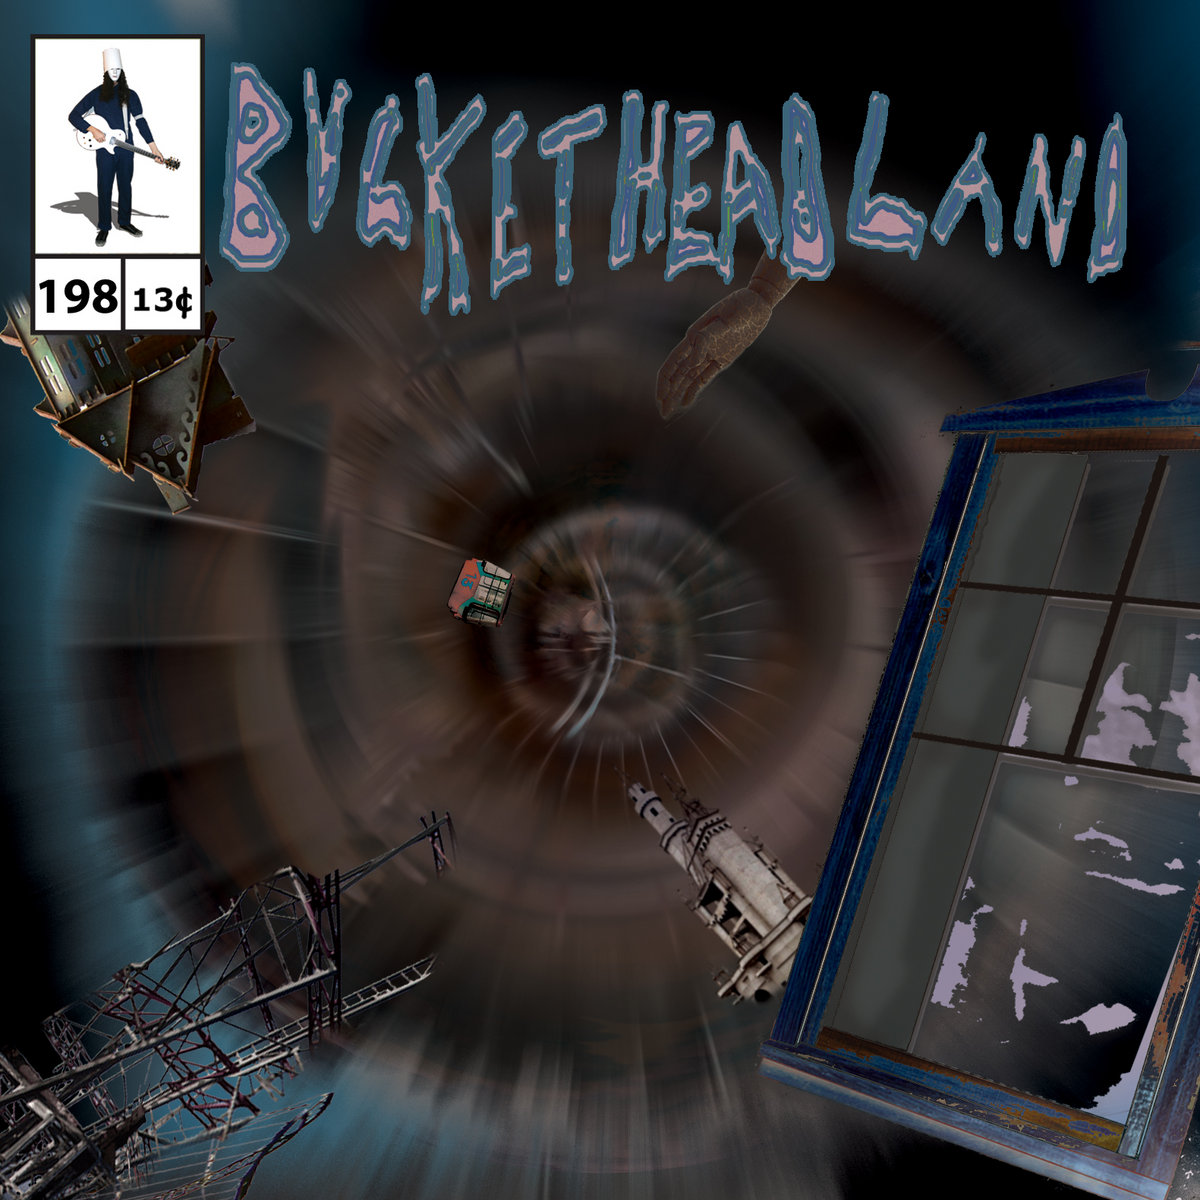 9 days til halloween: eye on spiral | bucketheadland